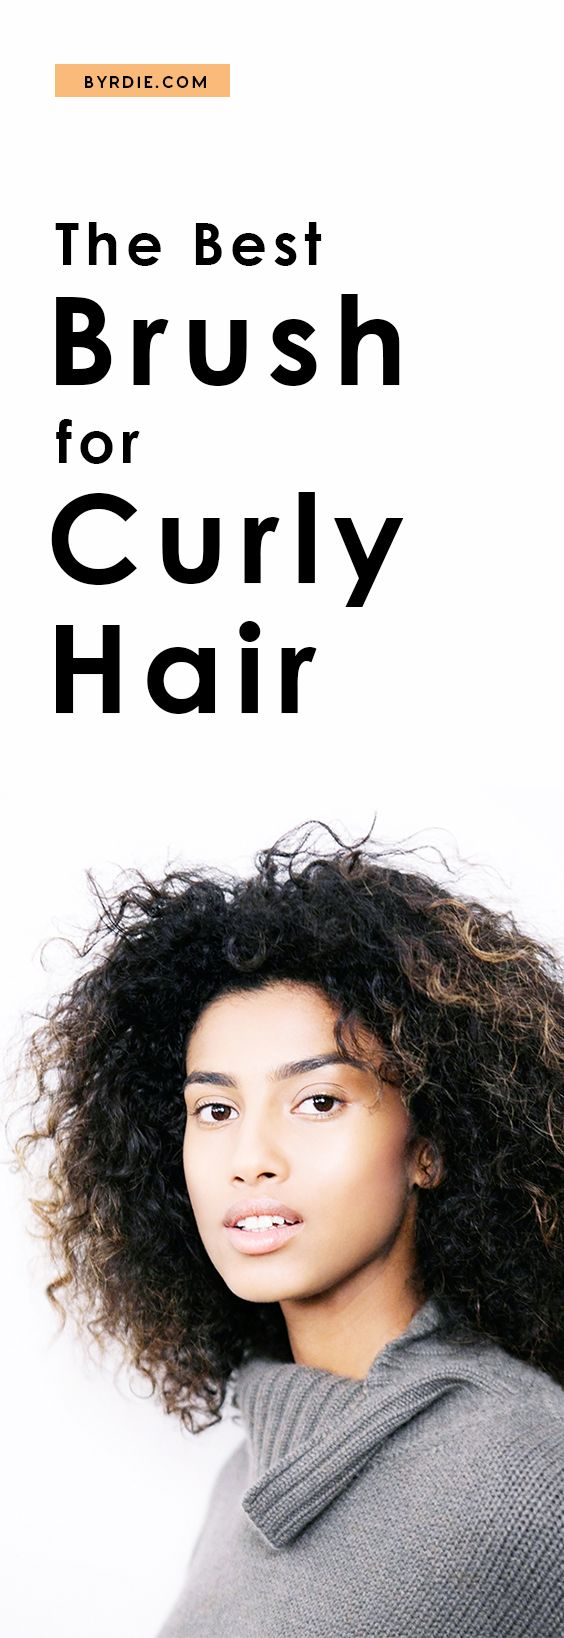 The best brush for curly hair